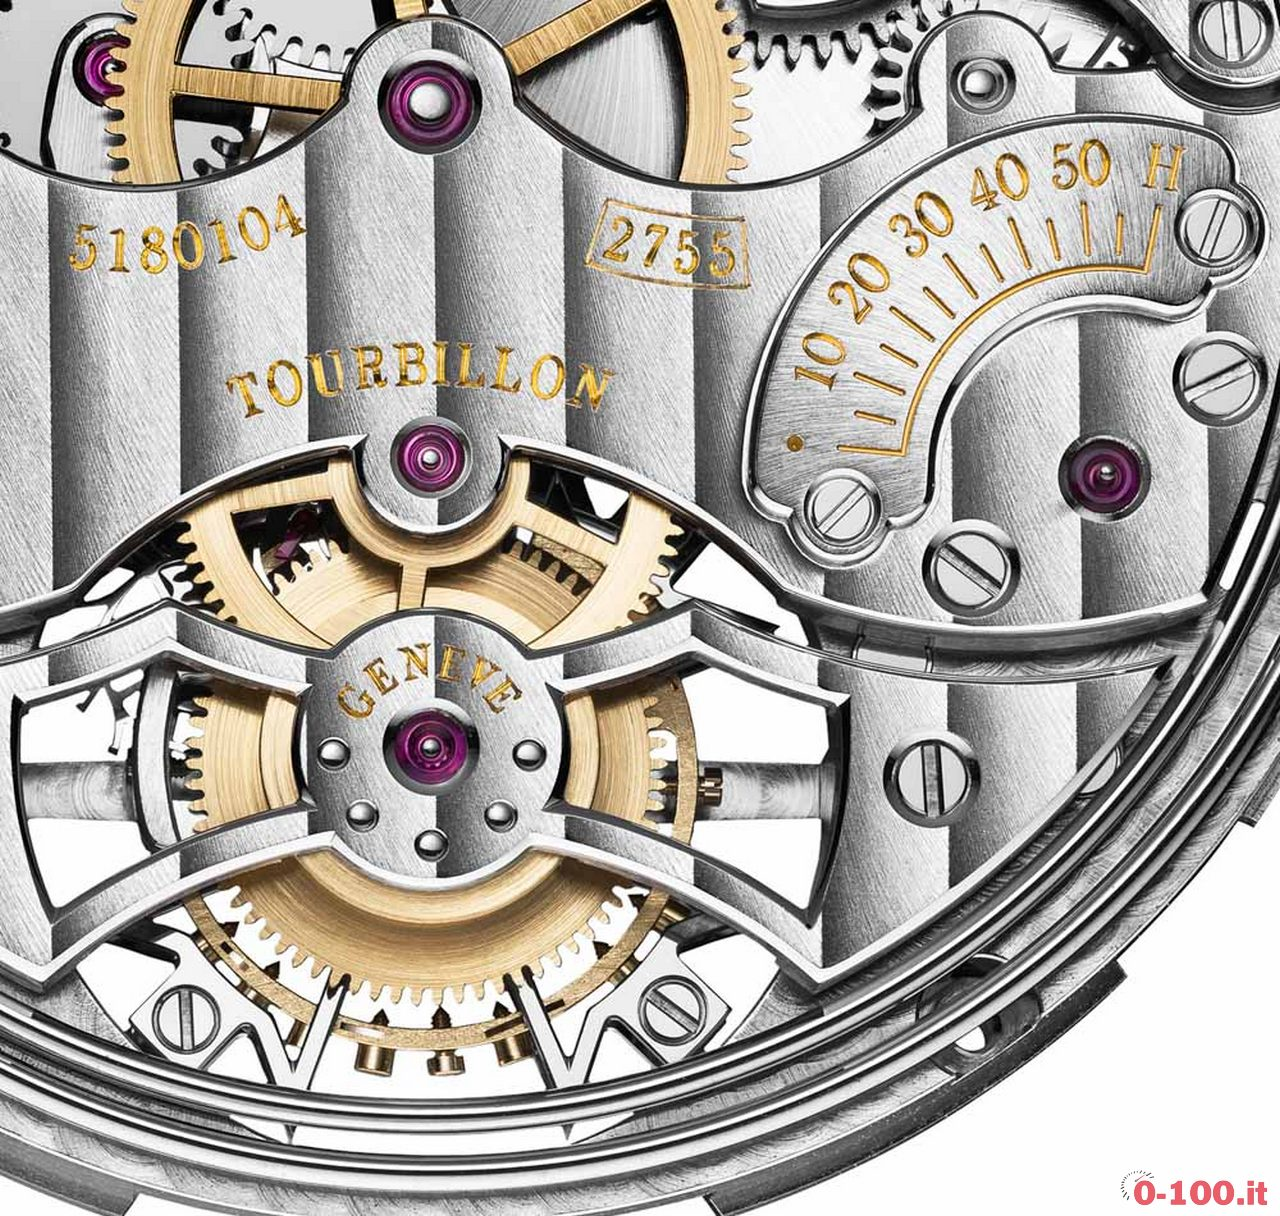 Vacheron-Constantin-Traditionnelle-Minute-Repeater-Tourbillon-aBlogtoWatch-cal2755-v-tr-2